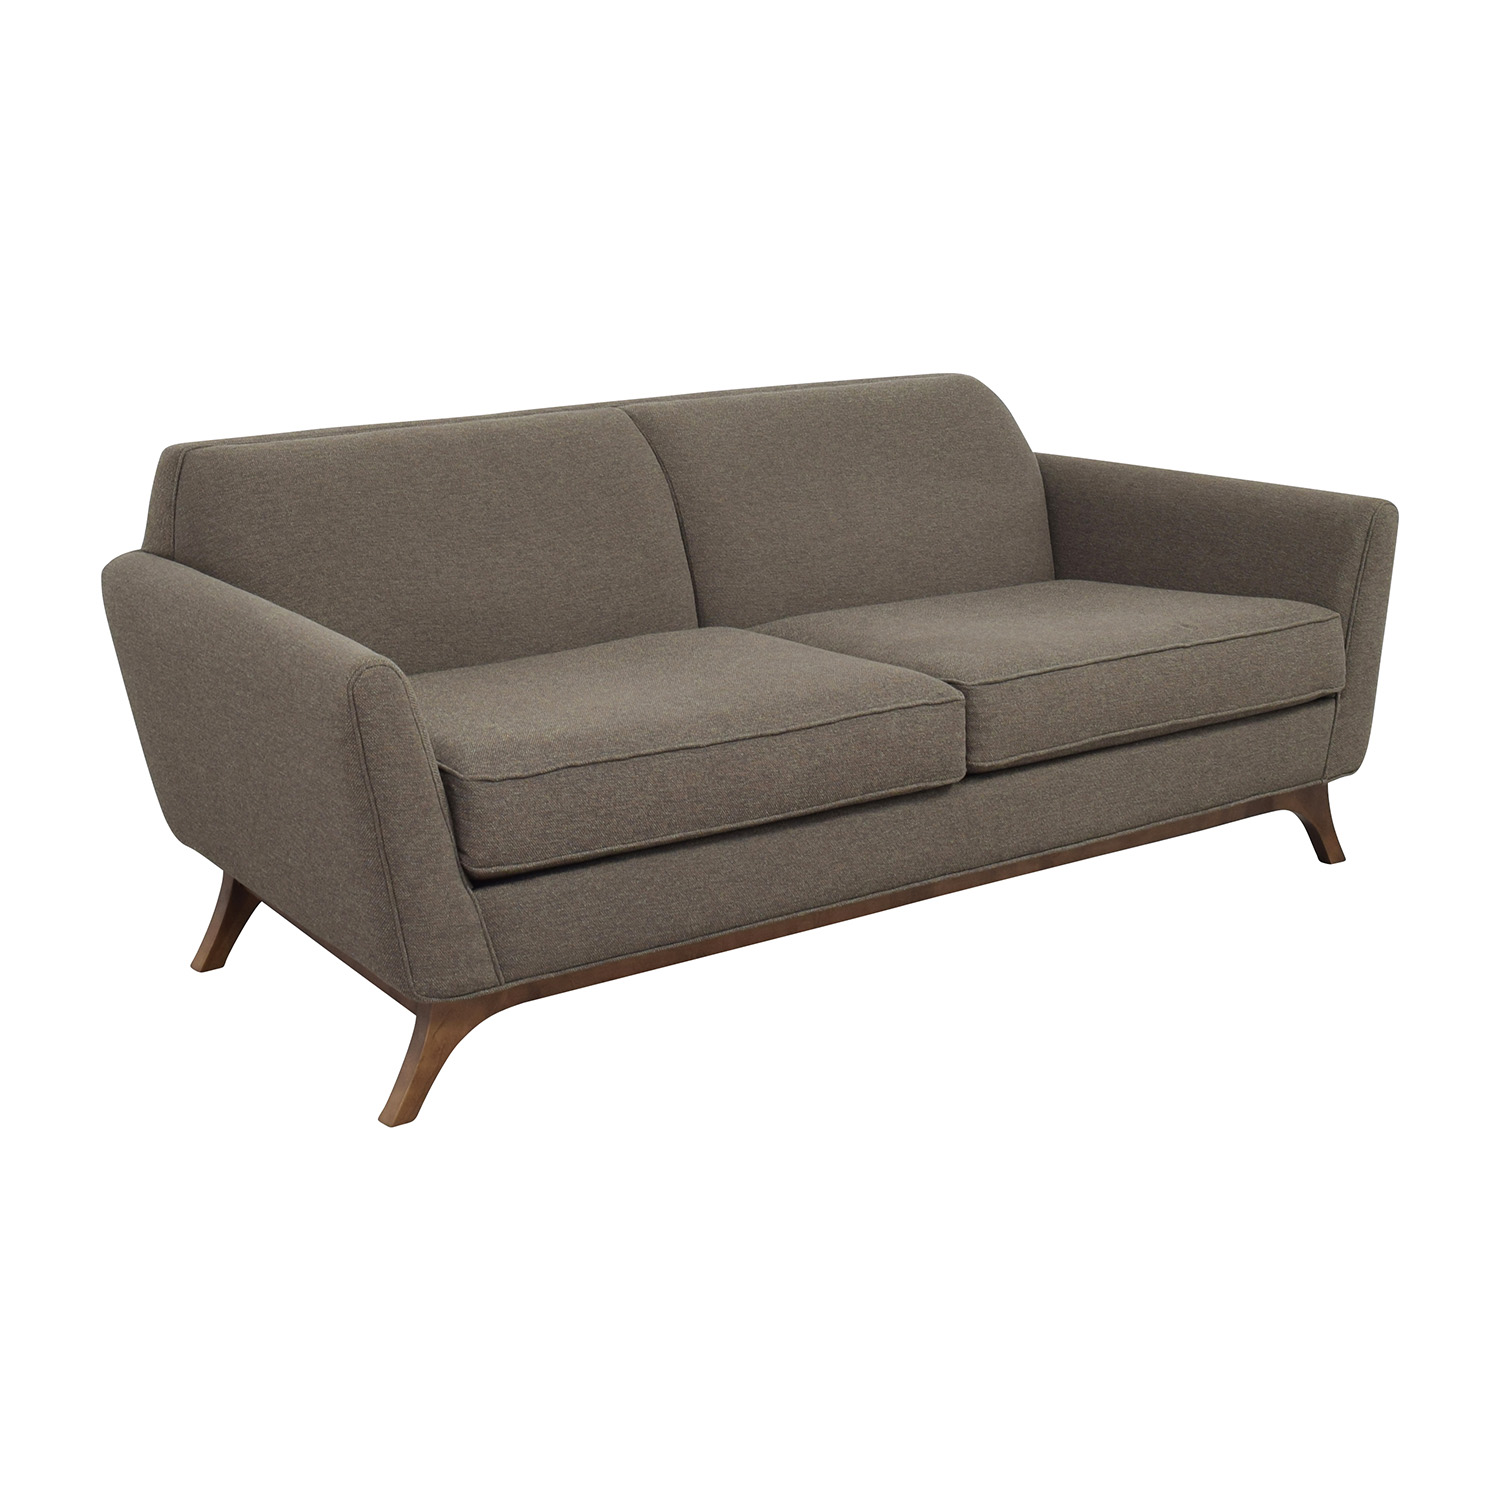 27 Off Smart Furniture Smart Furniture 1964 Sofa Sofas